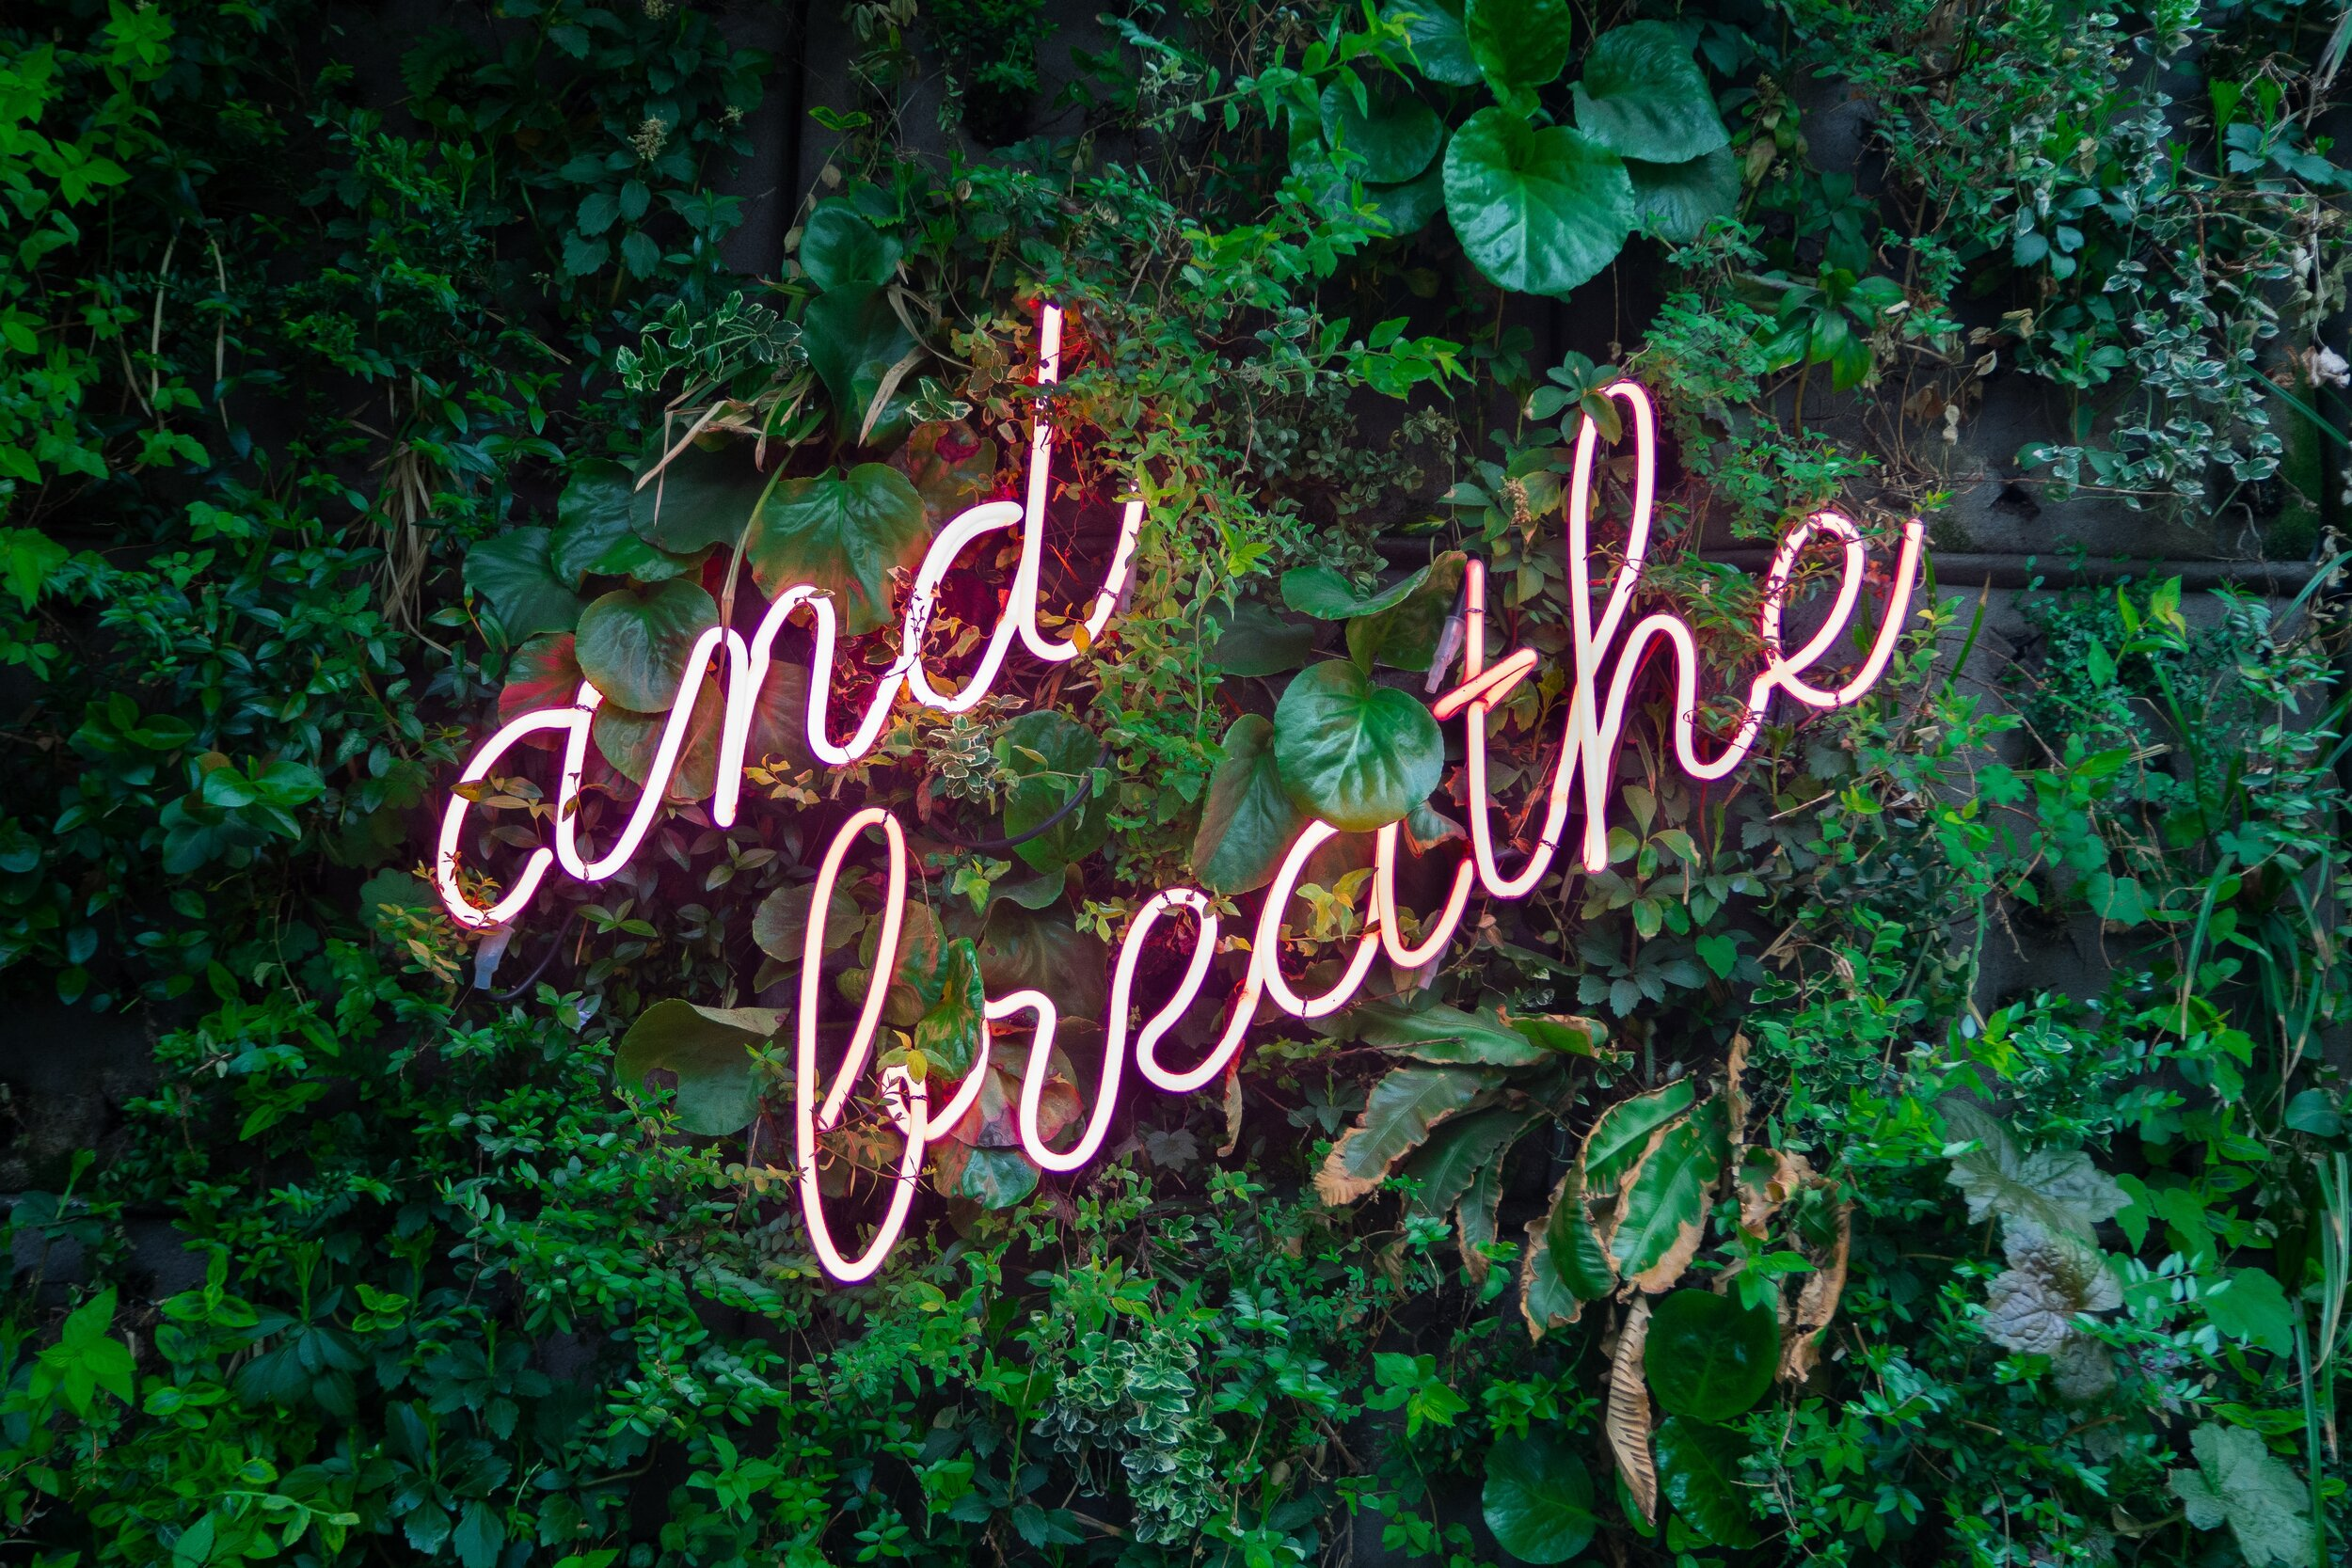 Image Description: A neon sign saying 'and breathe' on a green foliage wall